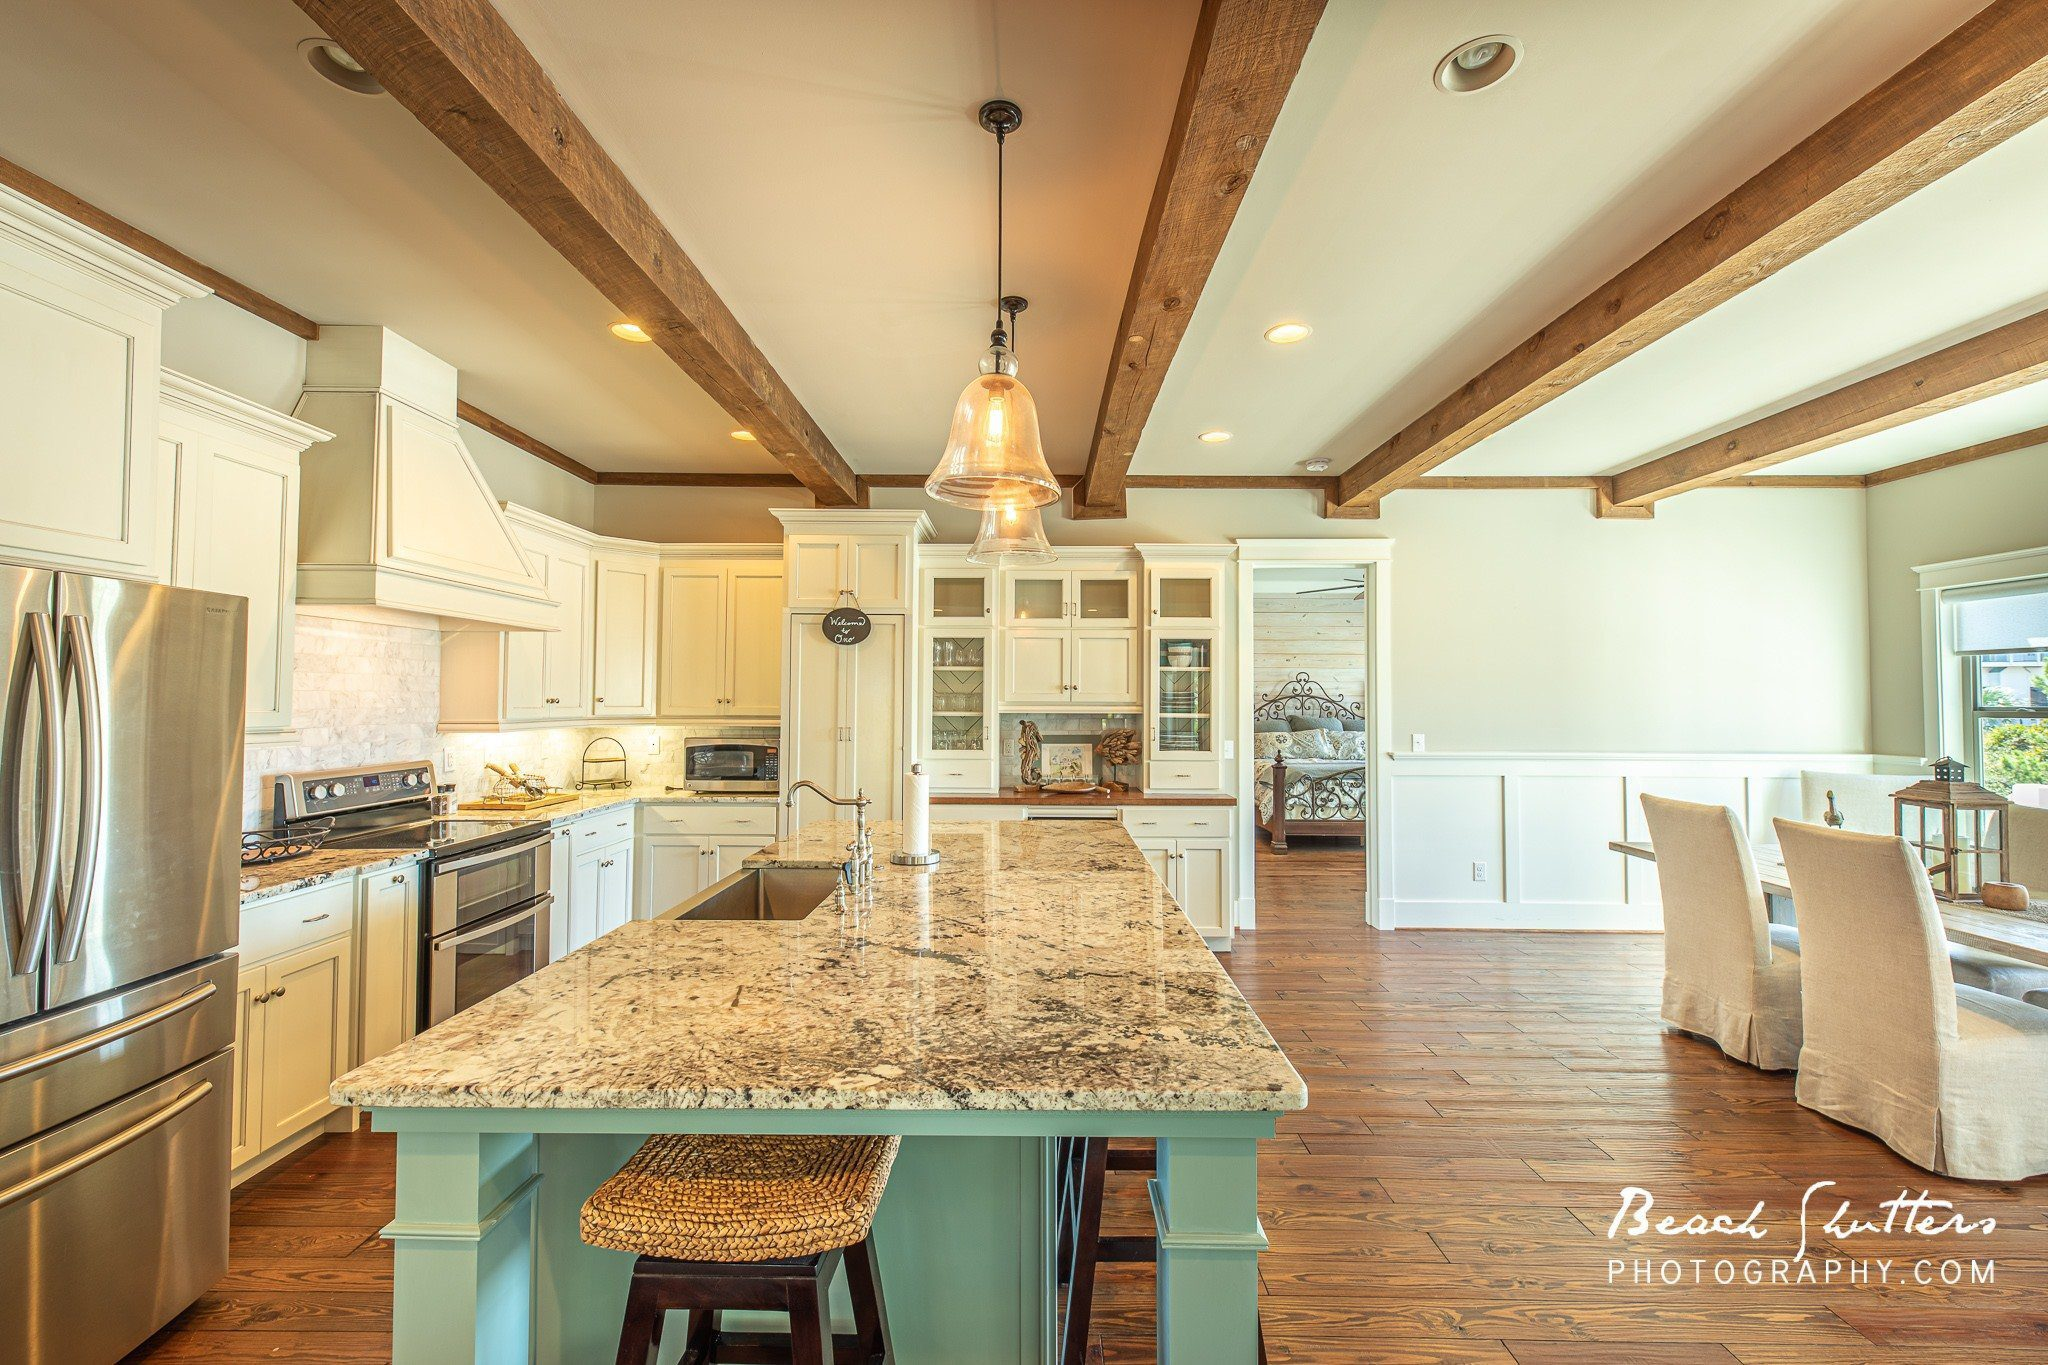 photographing houses in Orange Beach and Gulf Shores Alabama.